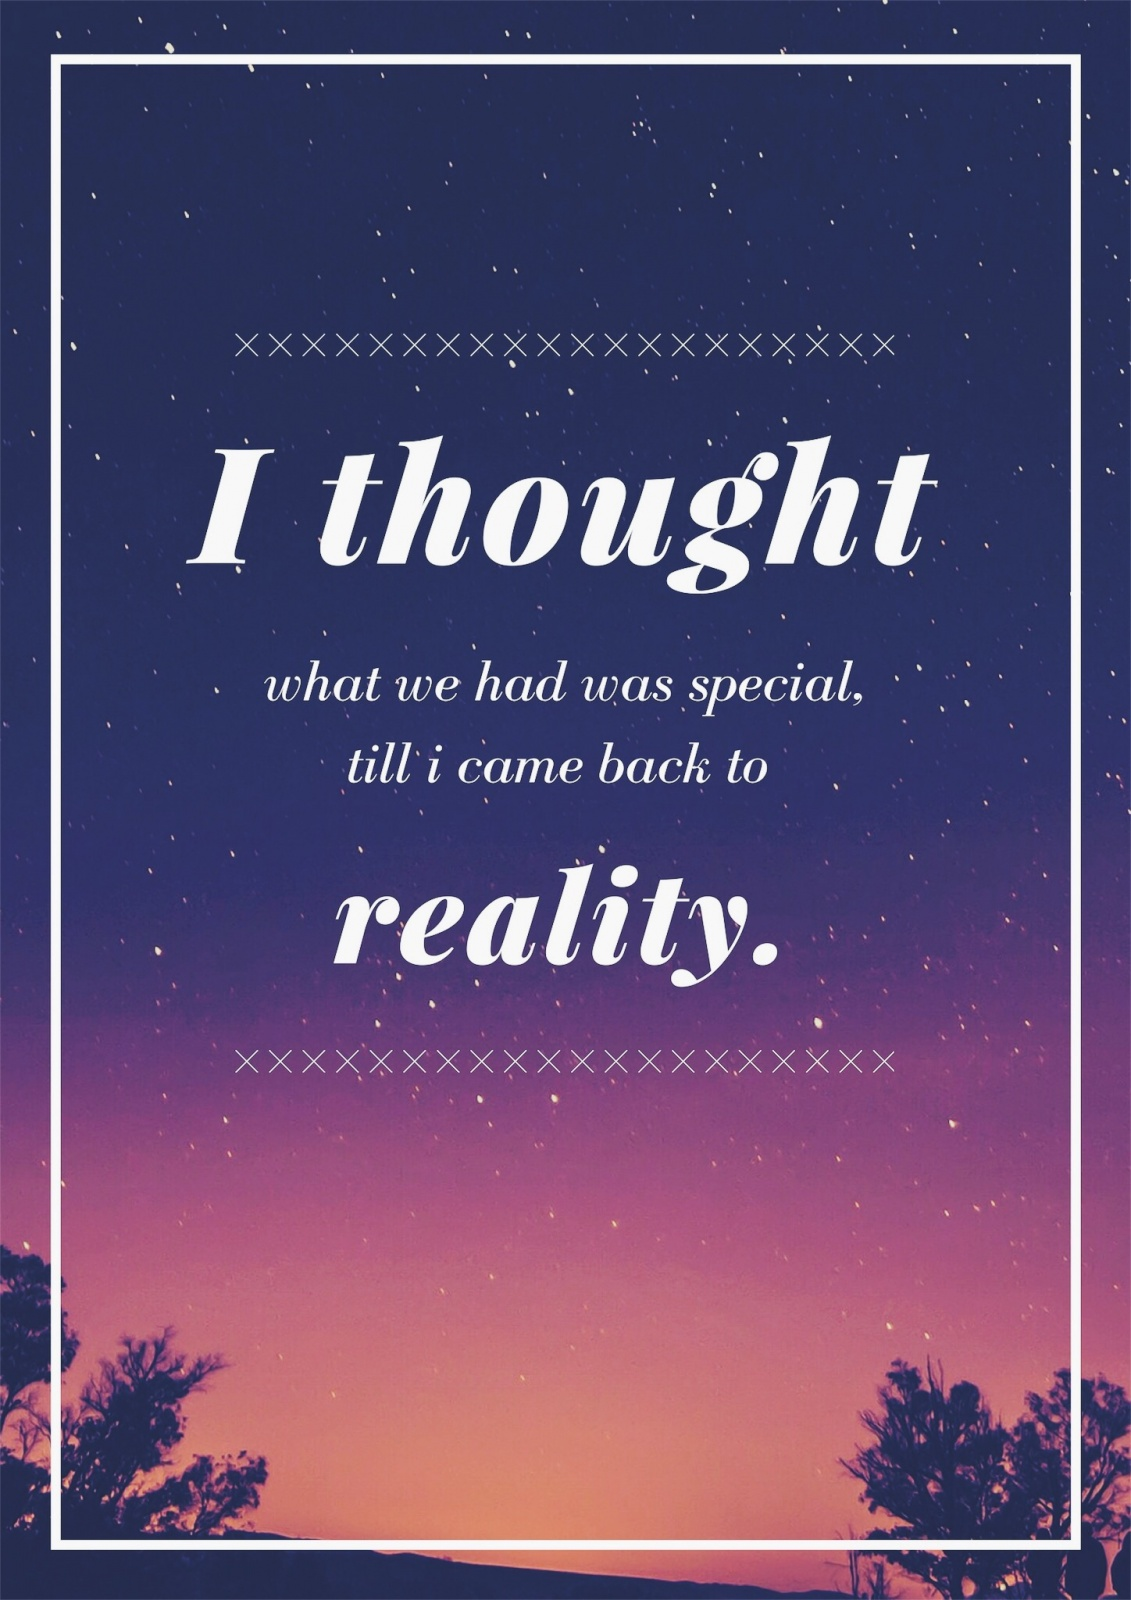 Ask me to make you a quote on a nice background, and no credit